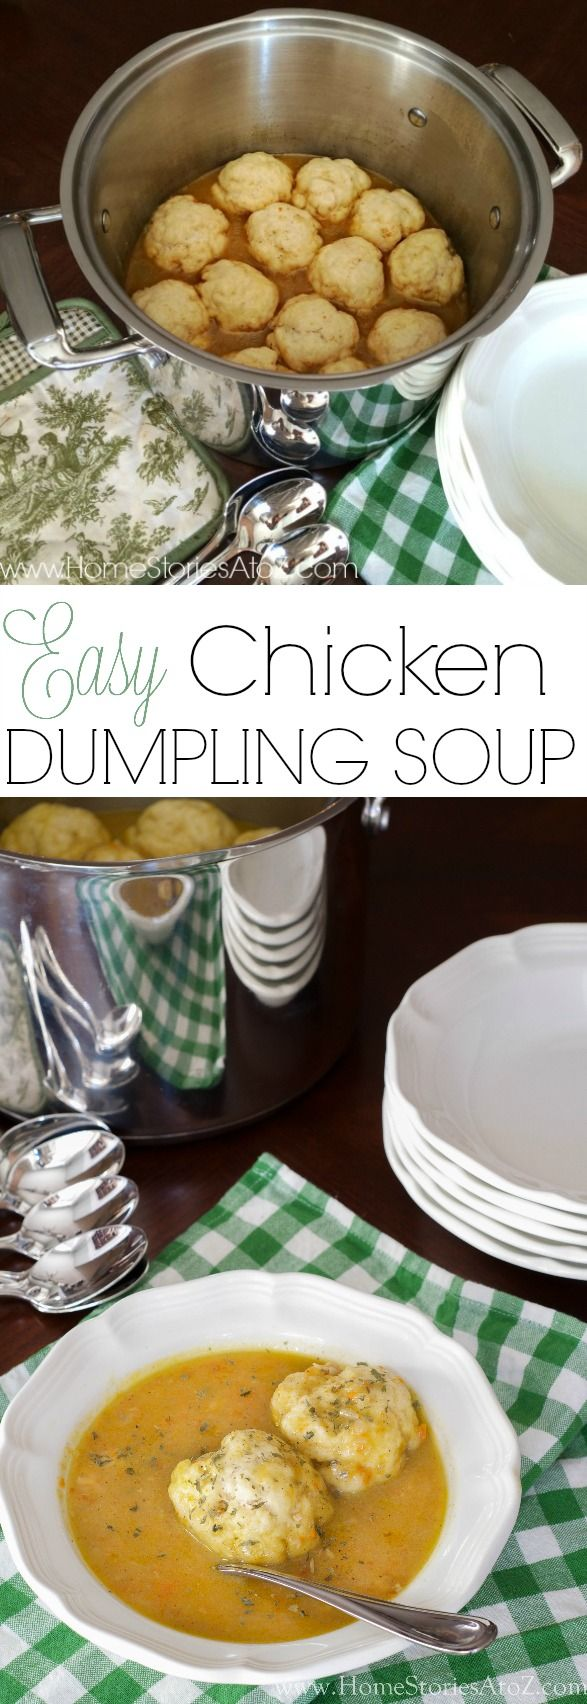 Easy Chicken Dumpling Soup. This is a family heirloom for us and about the only thing that gets me through hard winters. I grew up on this soup and my kids love it as well!